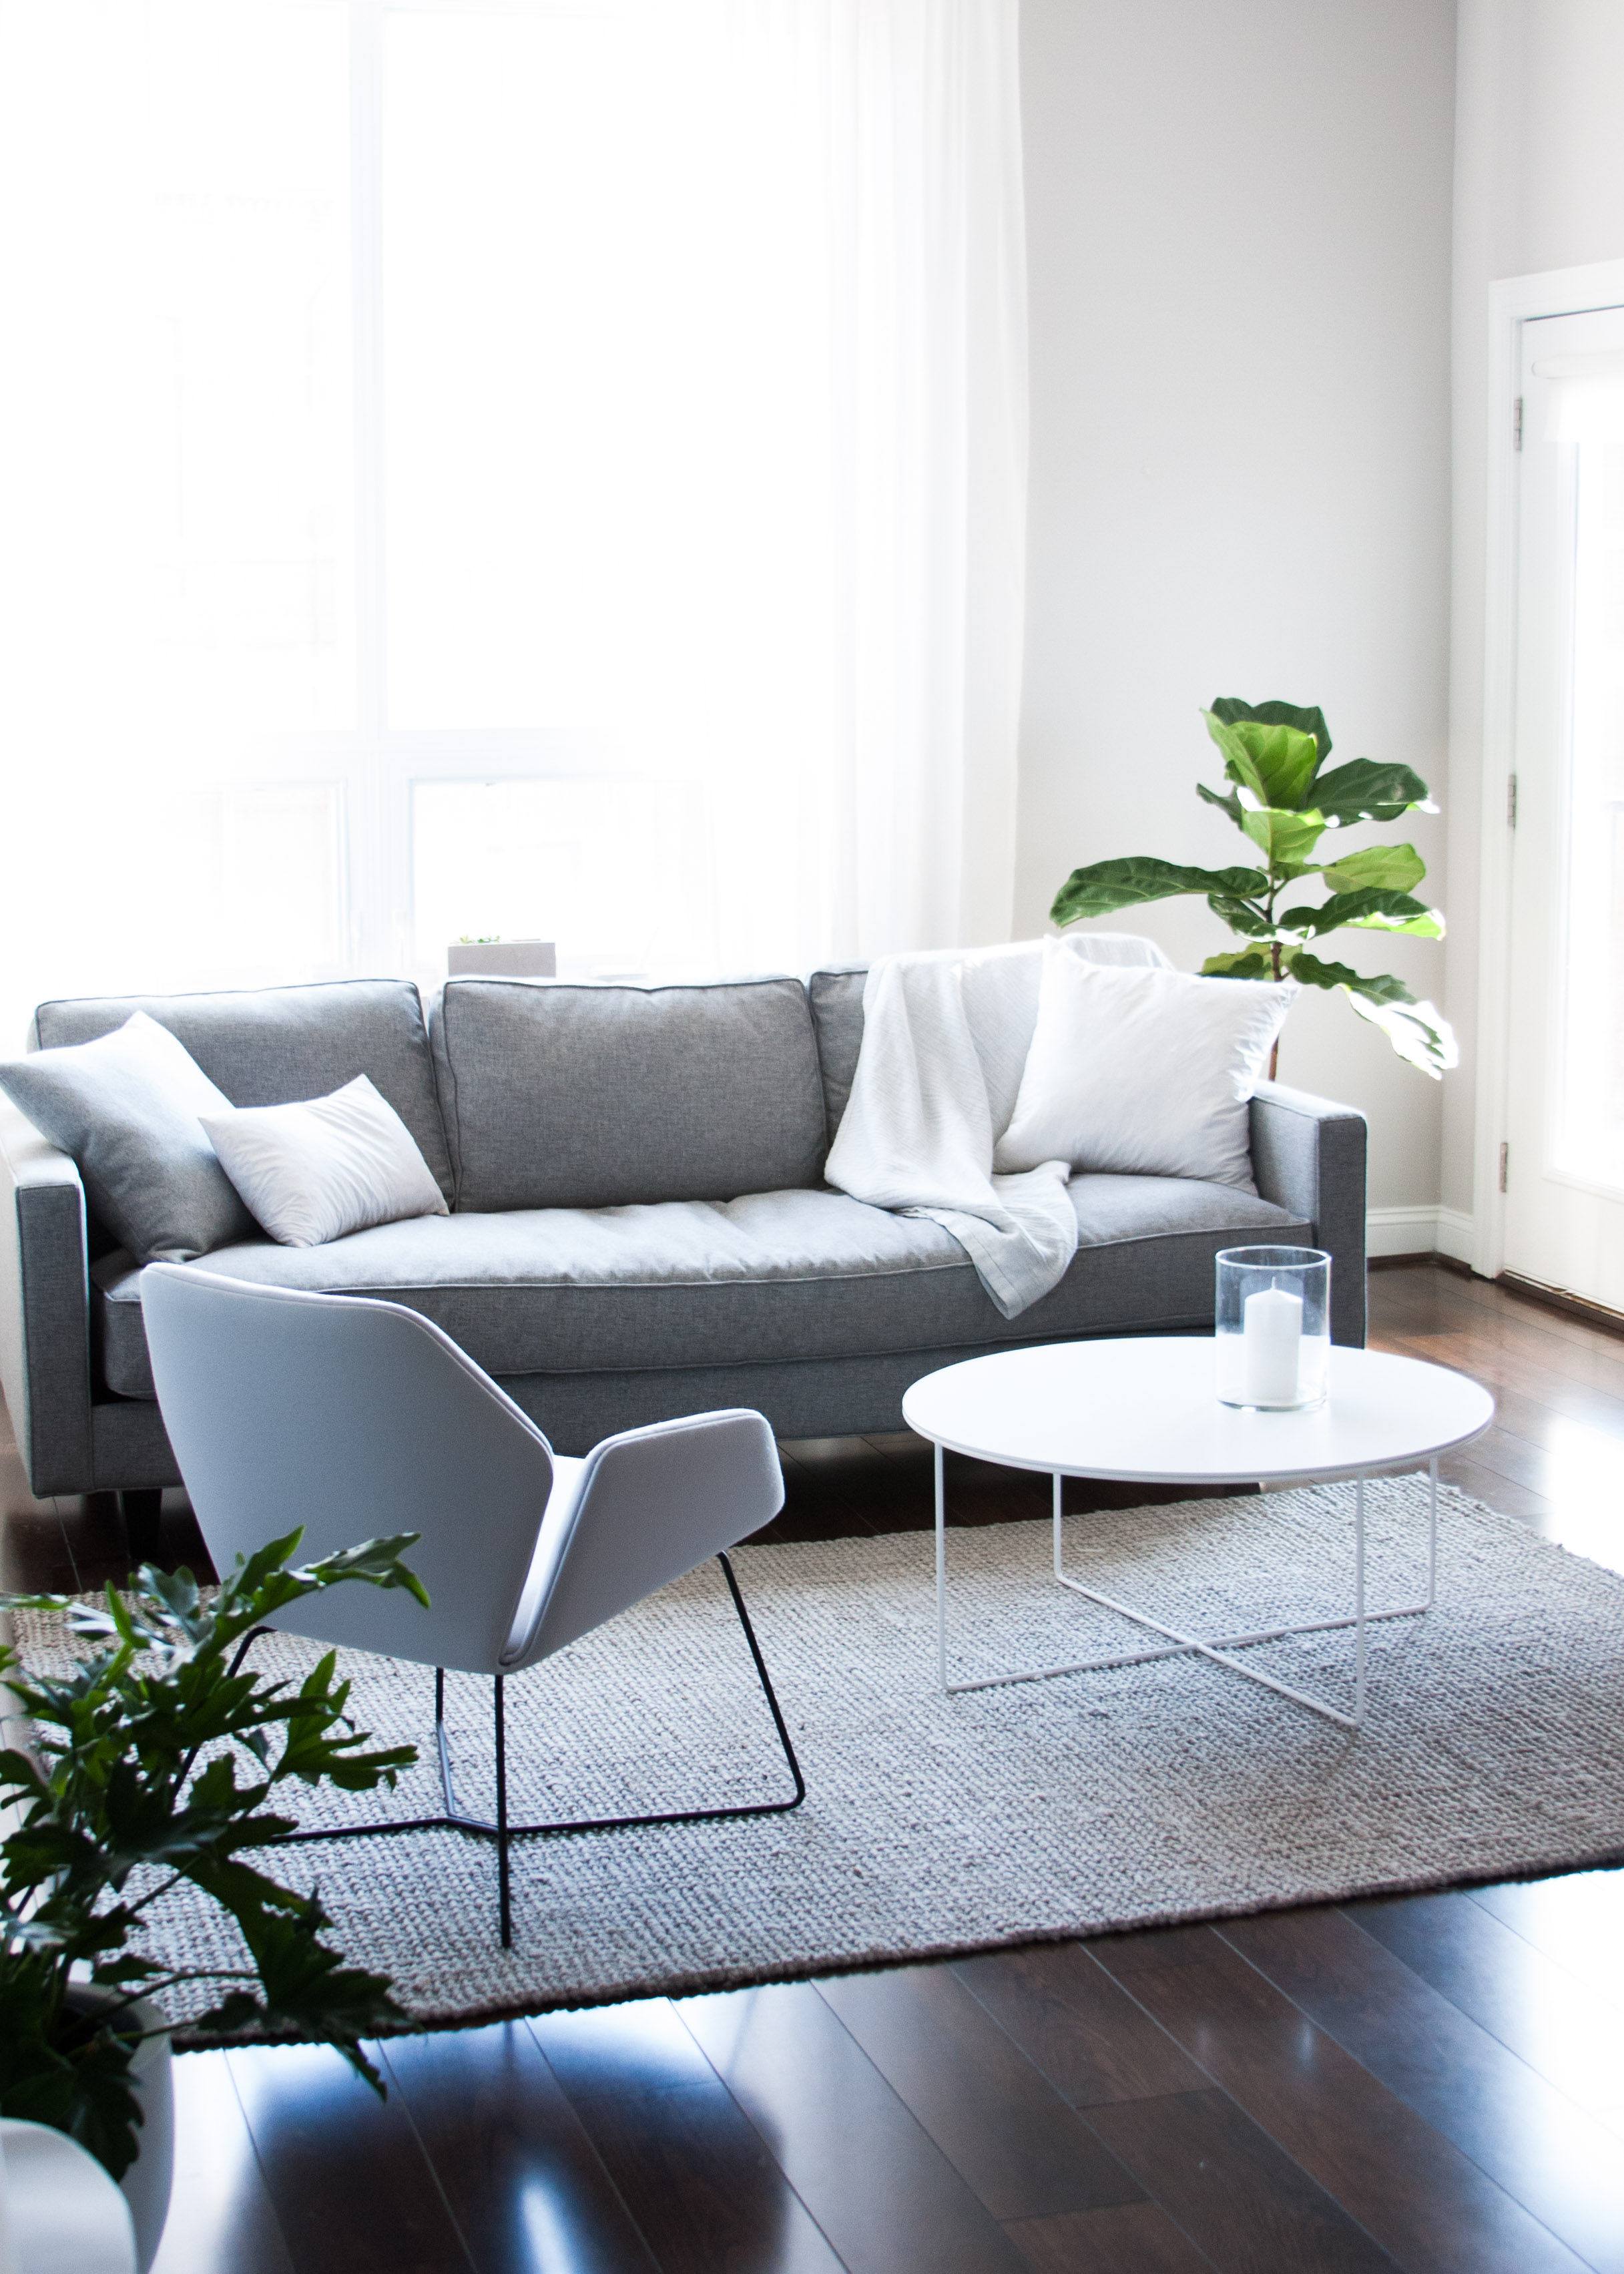 Rearrange living room minimalist scandinavian home interior rgdaily 3 rg daily for How to rearrange my living room